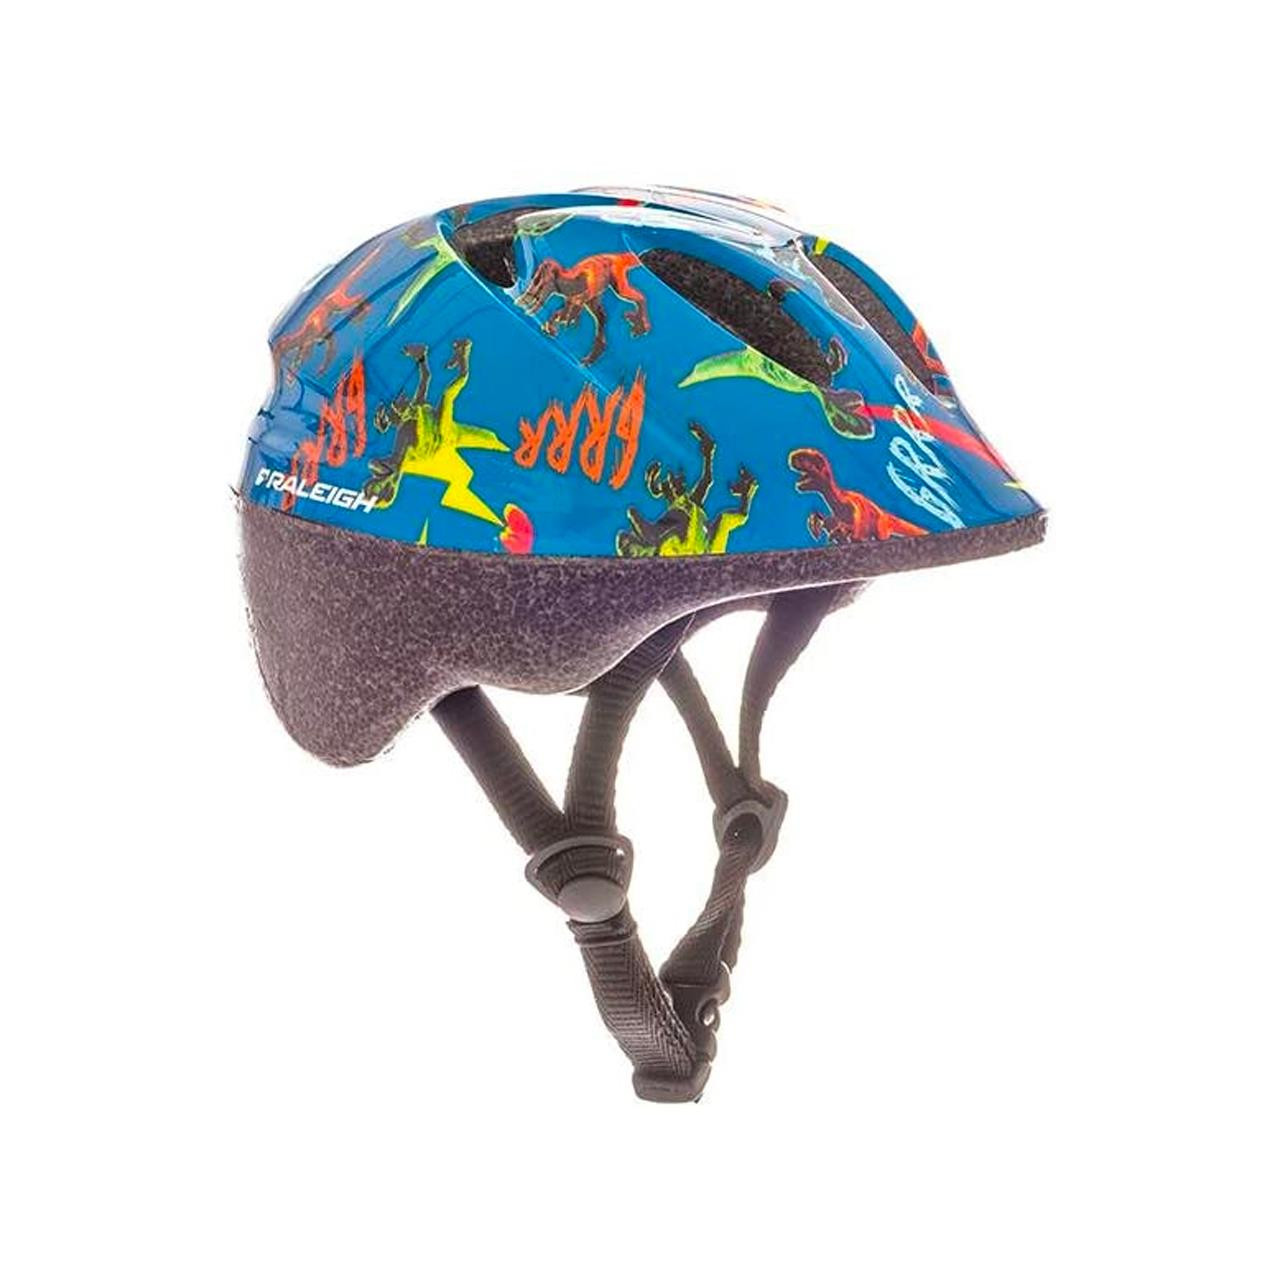 Raleigh Rascal Kids Bike Helmet Dinosaur